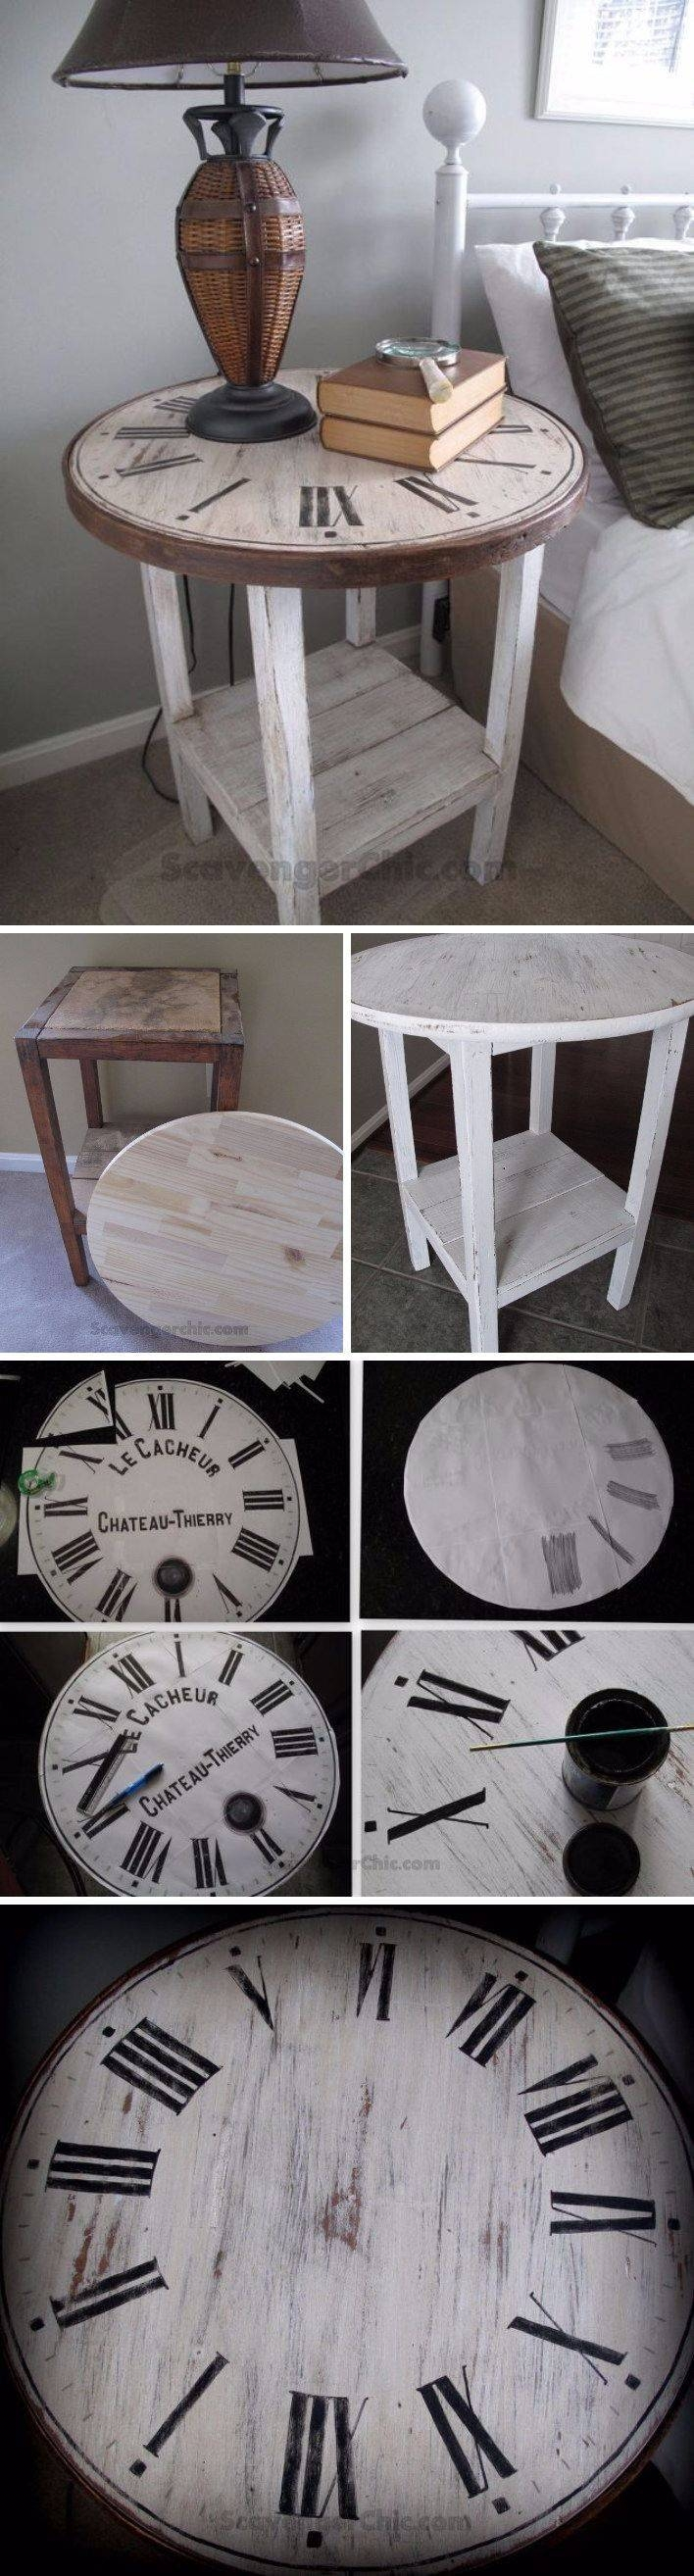 Best 20+ Clock Table Ideas On Pinterest | Small Round Side Table throughout Clock Coffee Tables Round Shaped (Image 6 of 30)